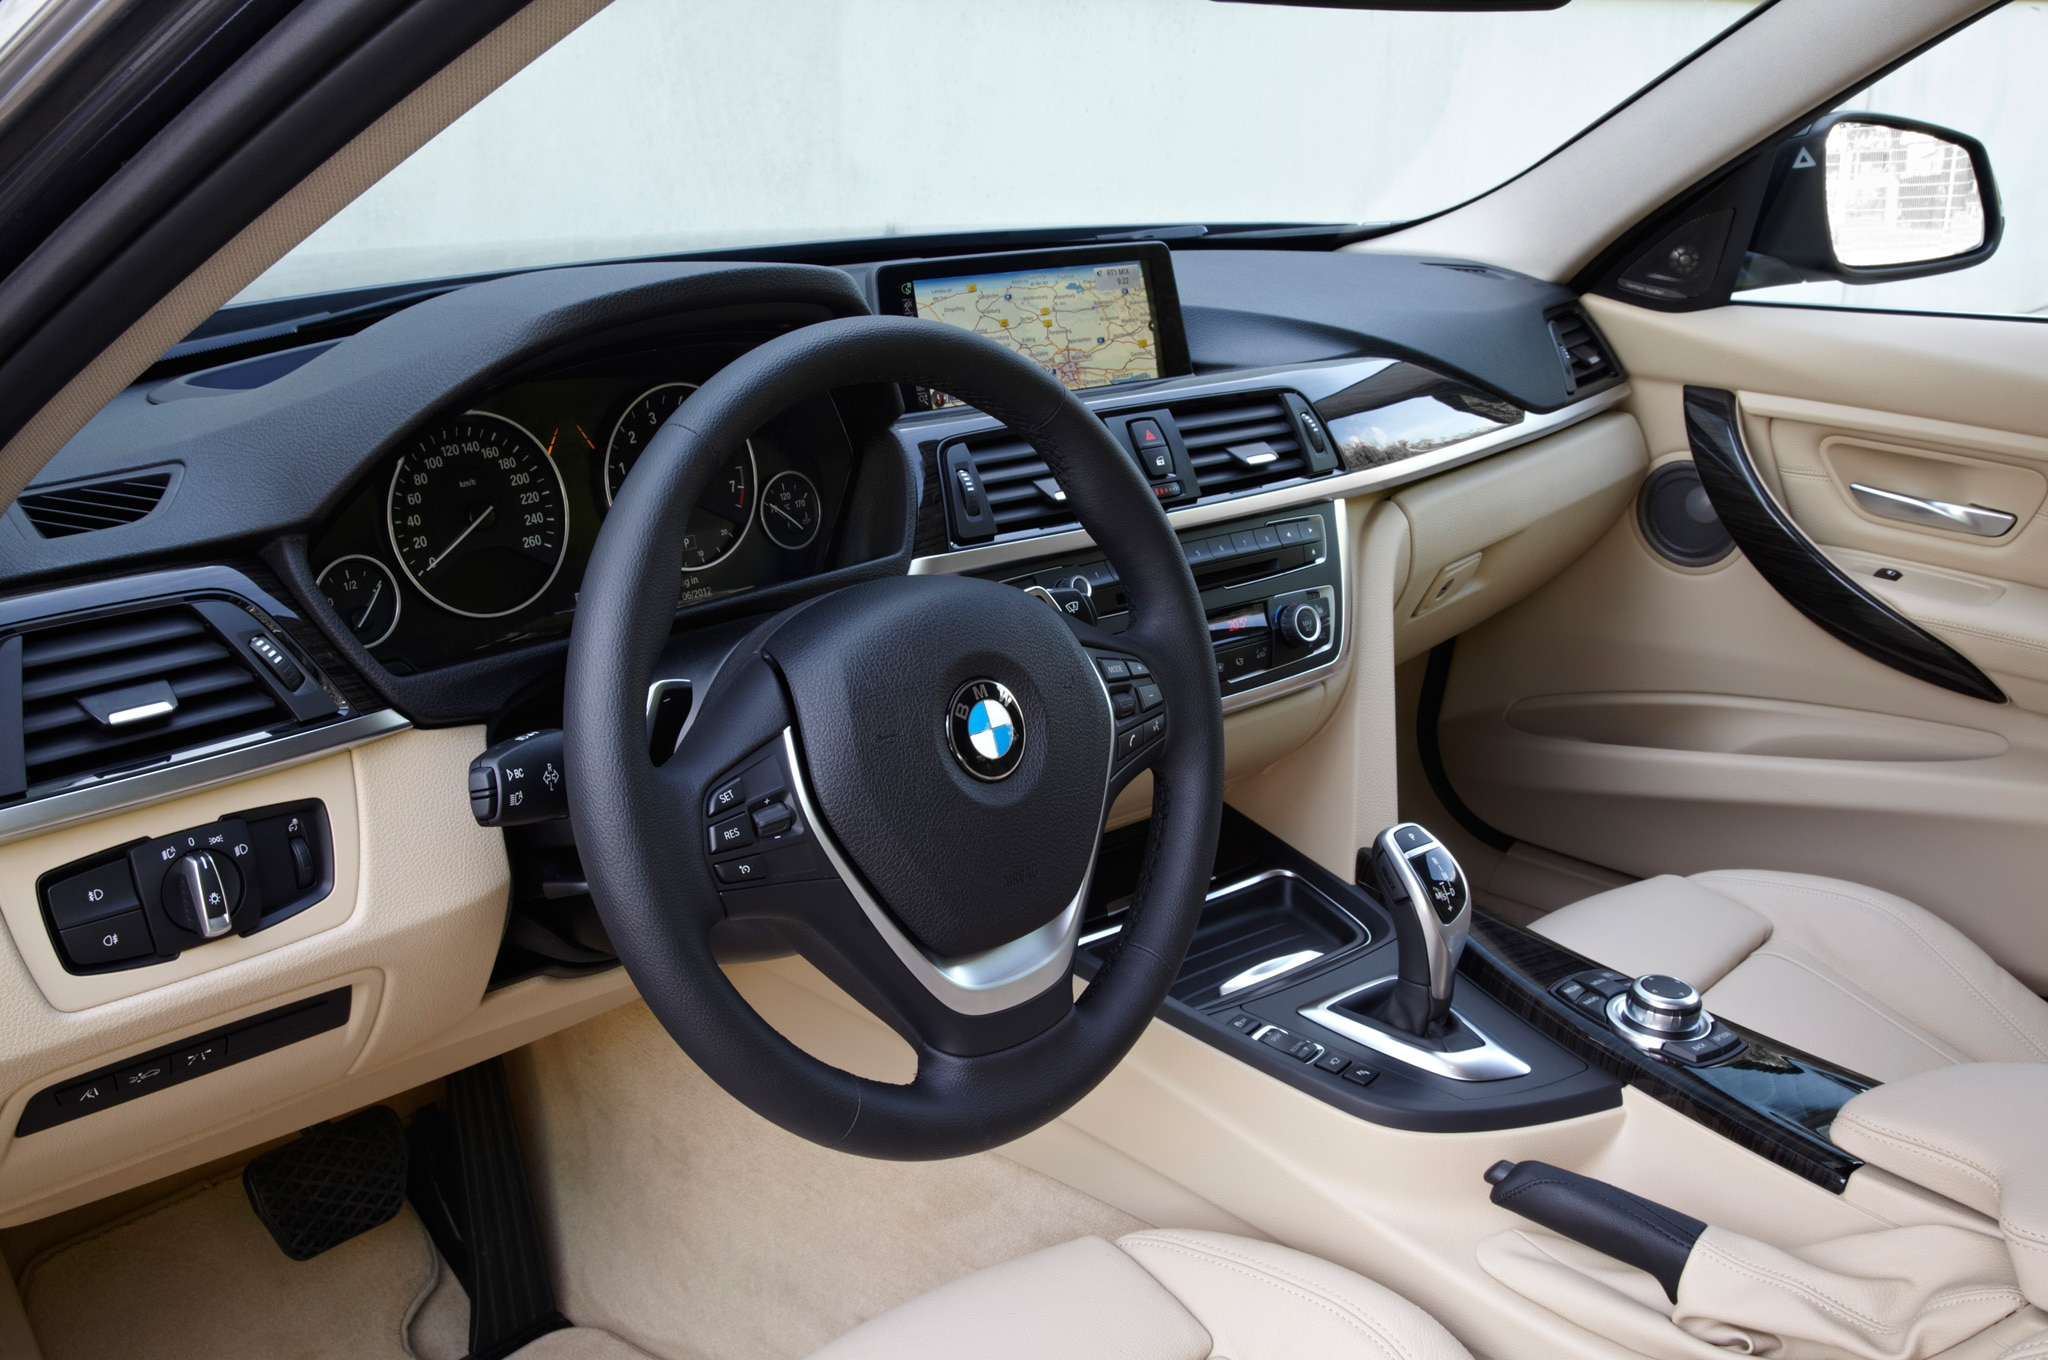 2013 bmw 320i interior male models picture - 2013 Bmw 3 Series Sports Wagon 11 250 2013 Bmw